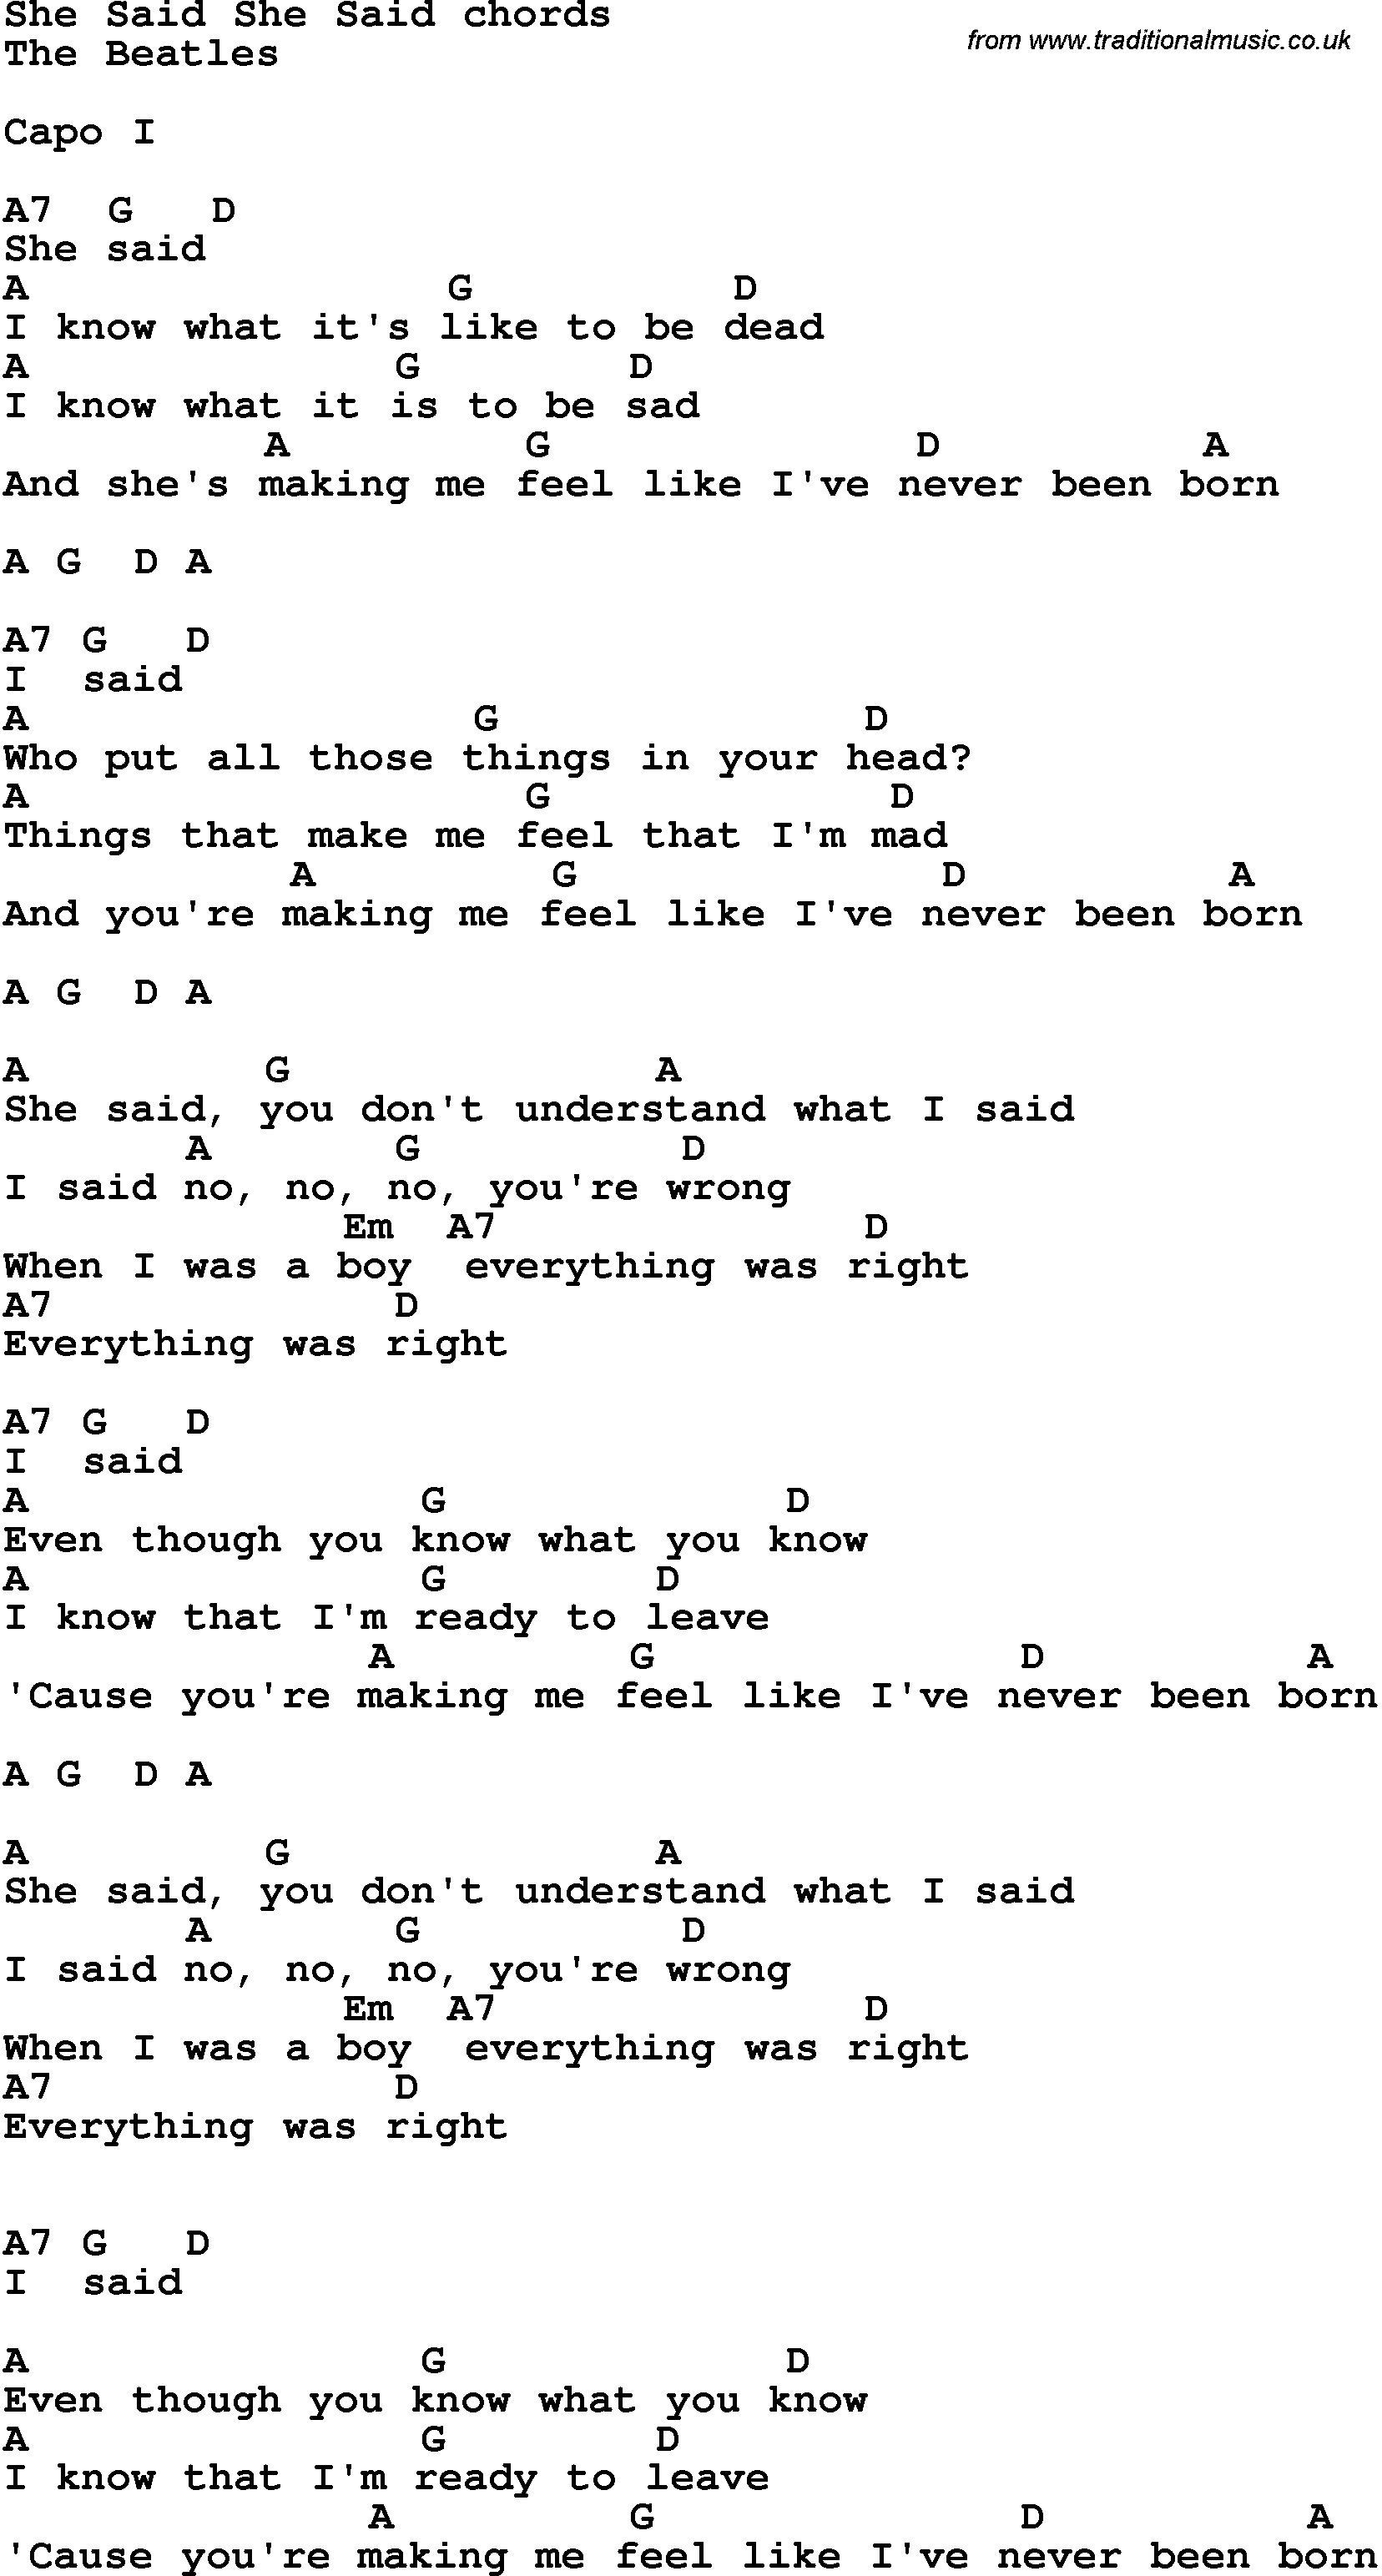 Song lyrics with guitar chords for she said she said the beatles song lyrics with guitar chords for she said she said the beatles hexwebz Images